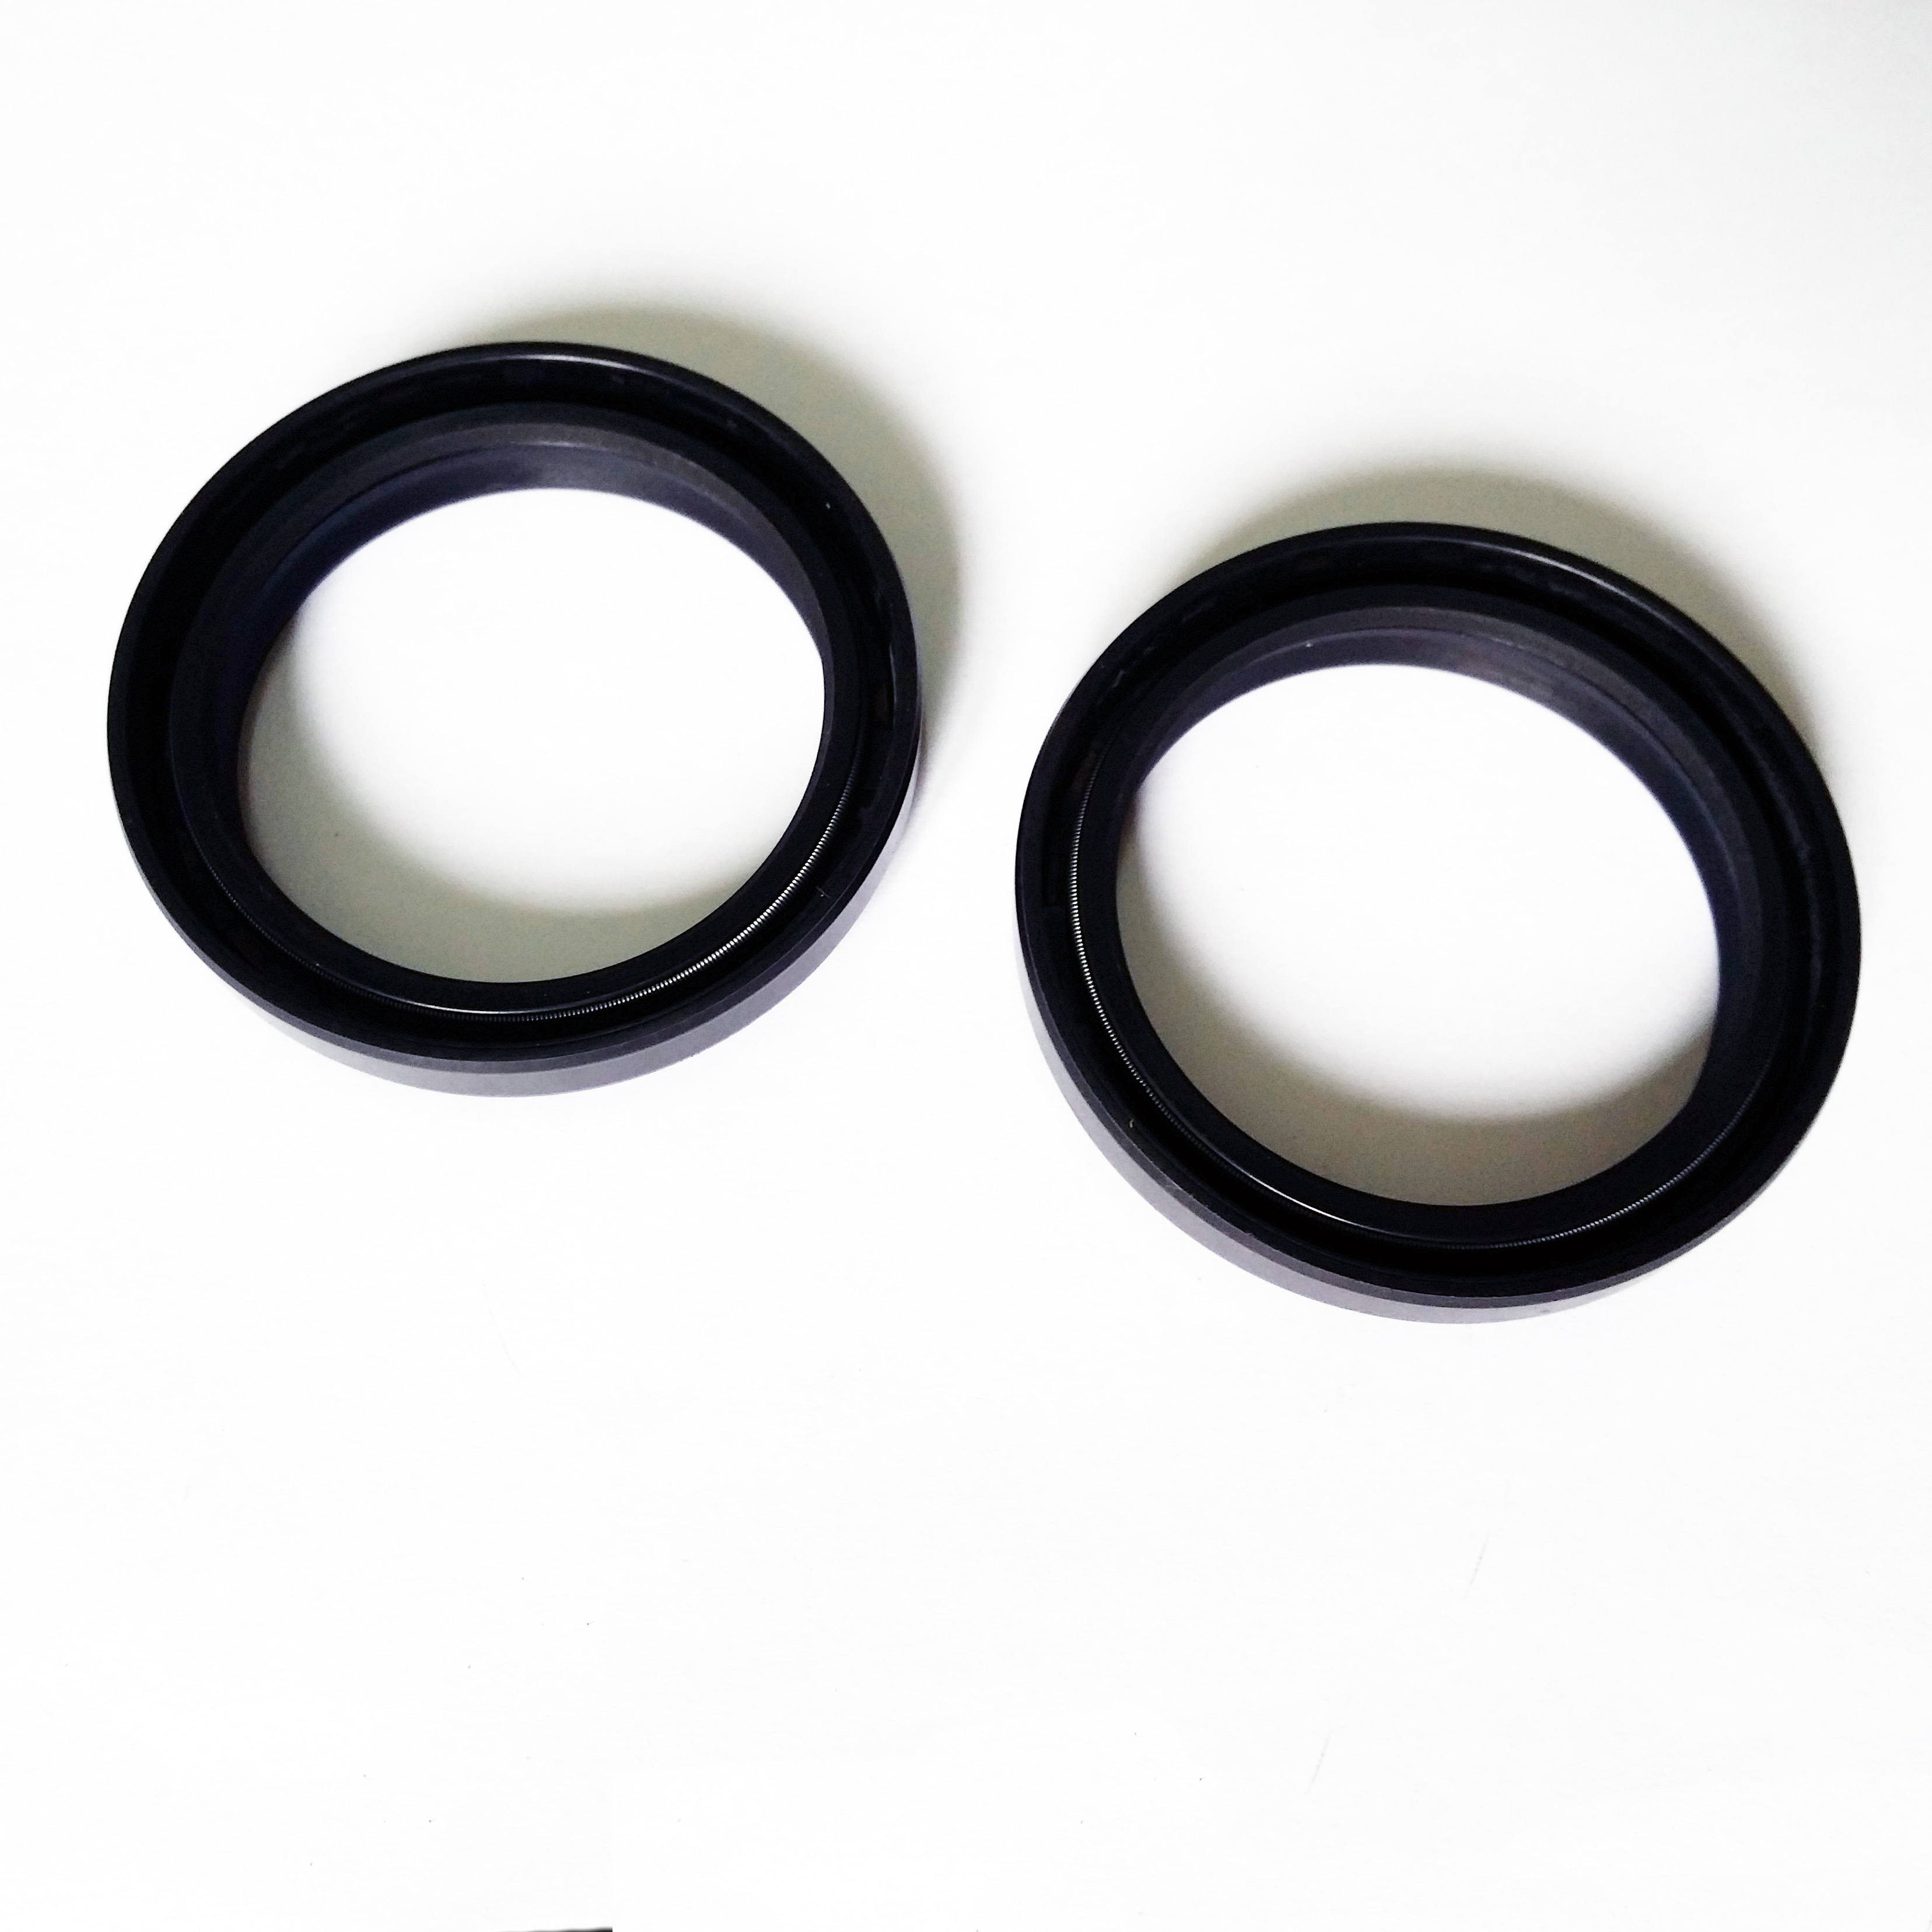 K-Tech TM MX300   2008-2012 NOK Front Fork Oil Seals 50x63x11mm